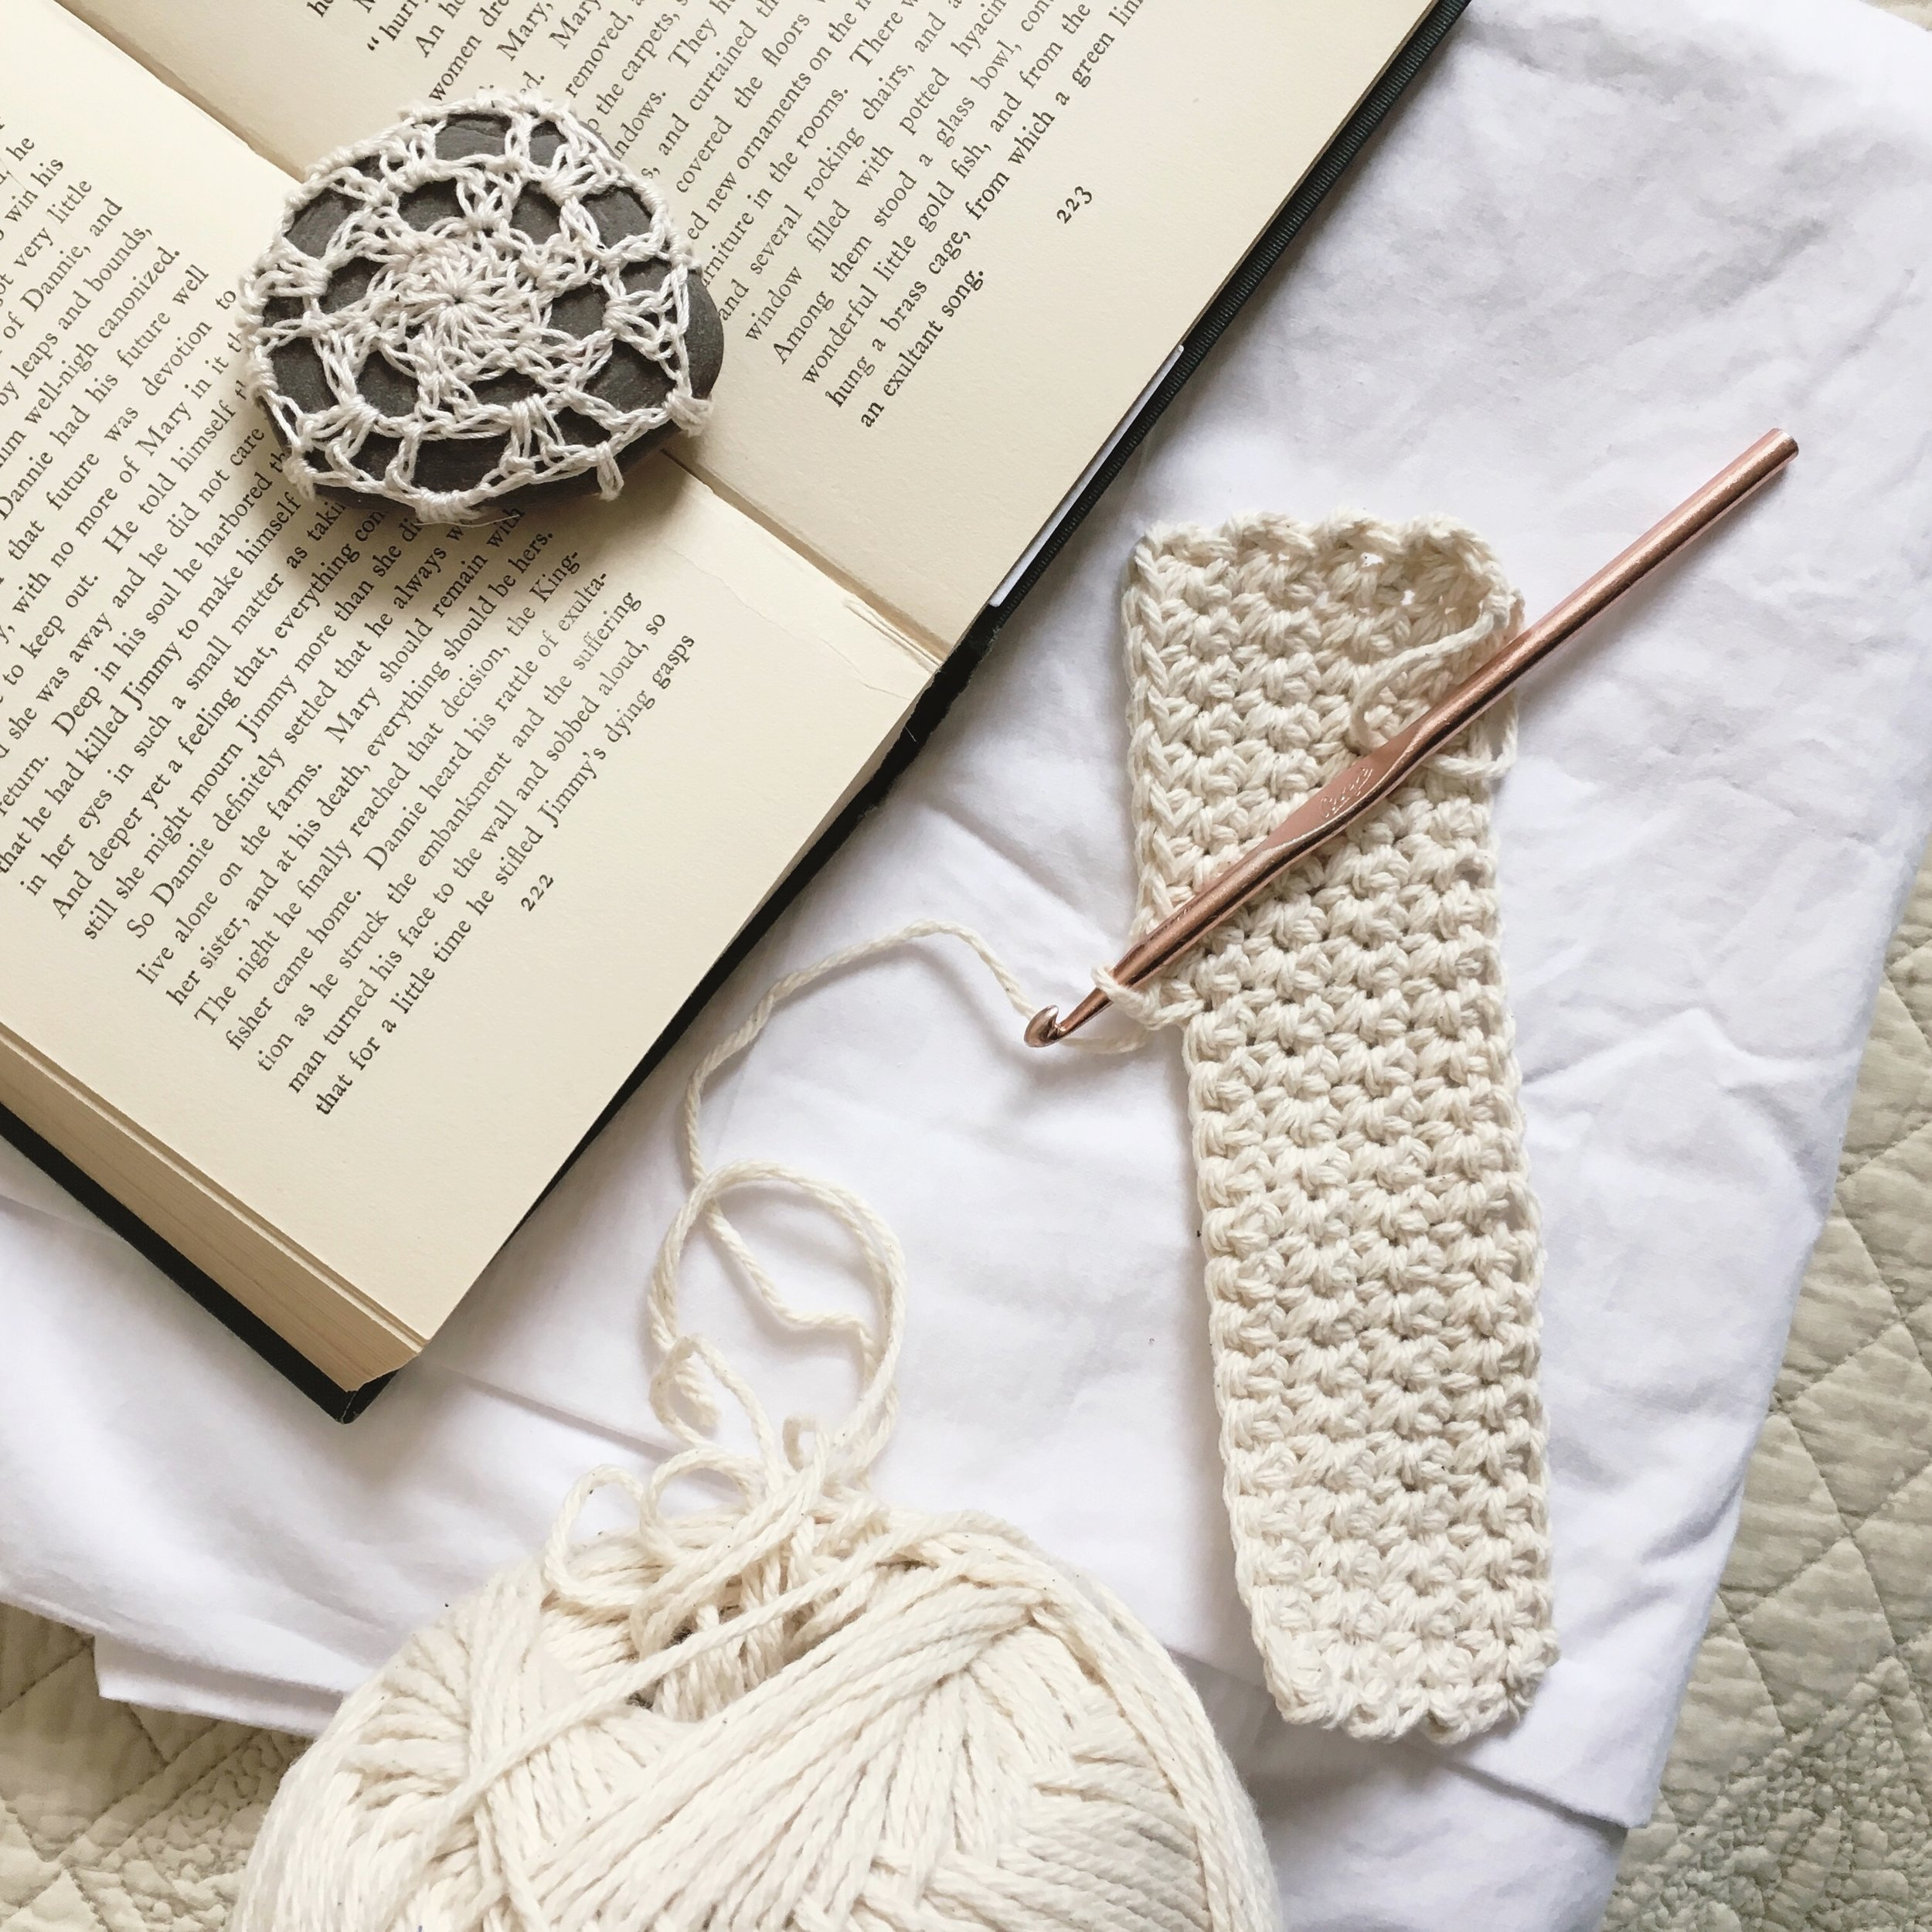 How to Single Crochet, Crochet Lessons by Blue Corduroy